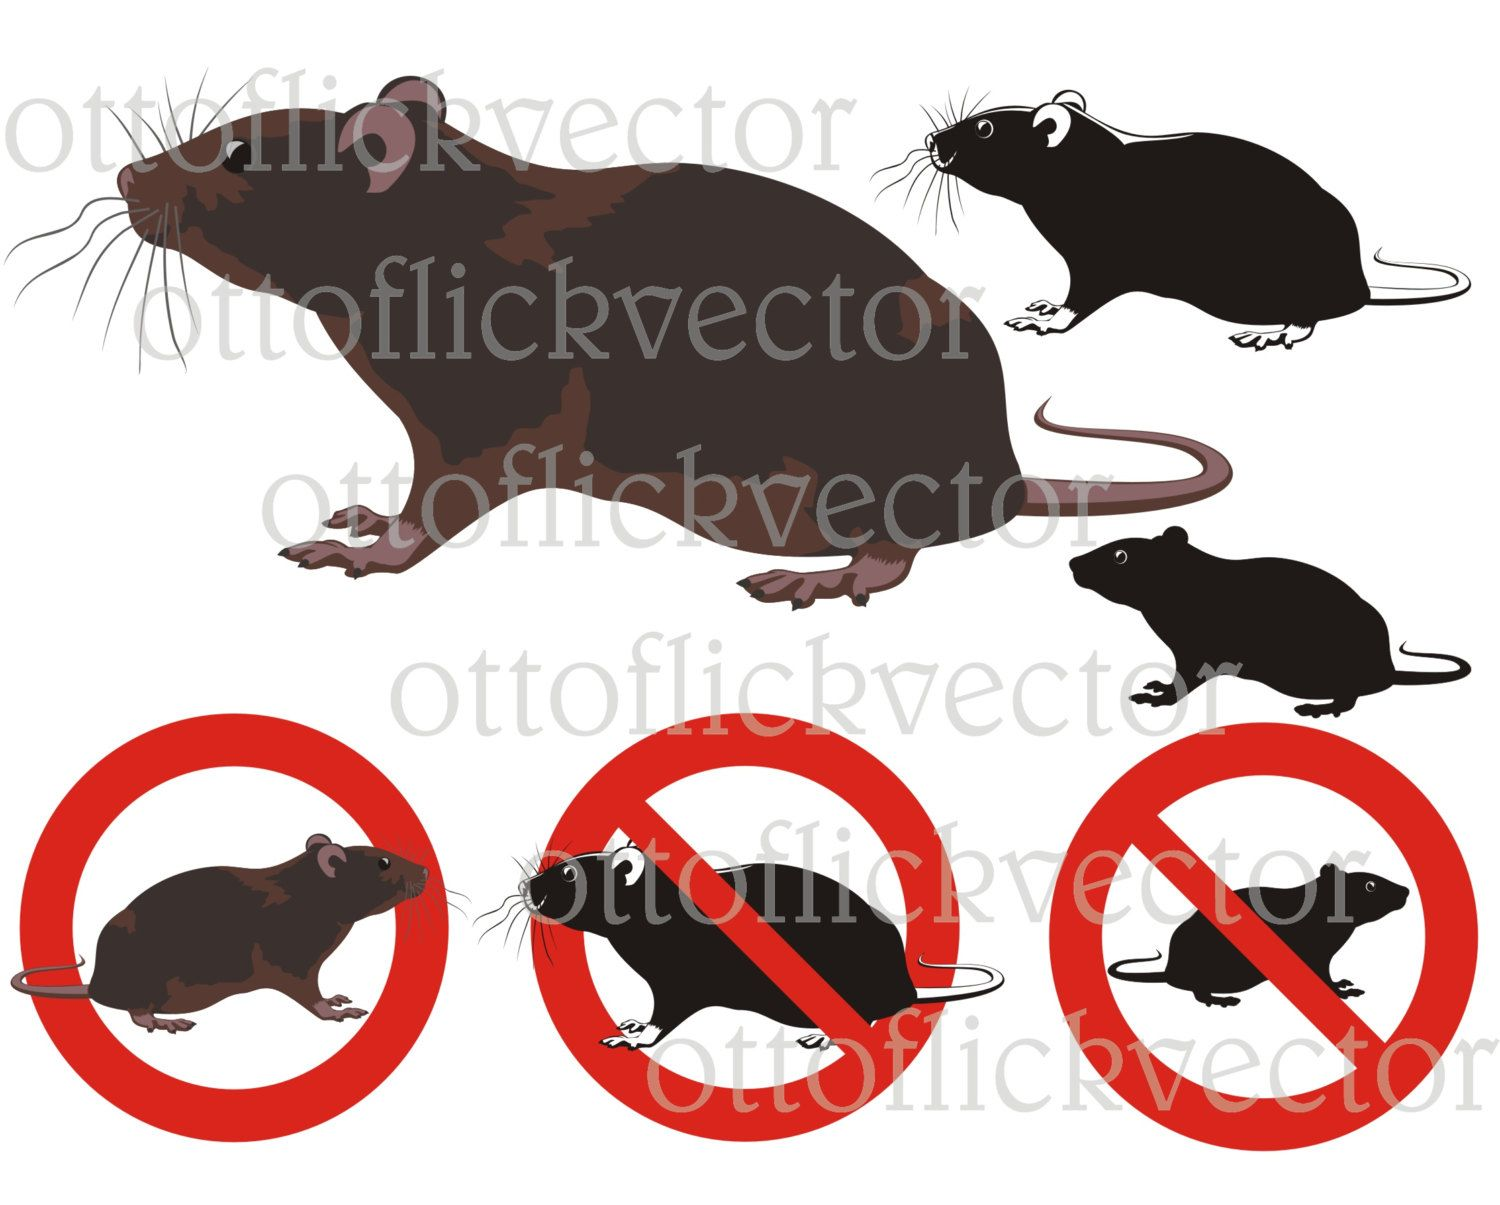 Exterminator Or Pest Control In Round Frame Stock Vector - Illustration of  circle, isolated: 90894944